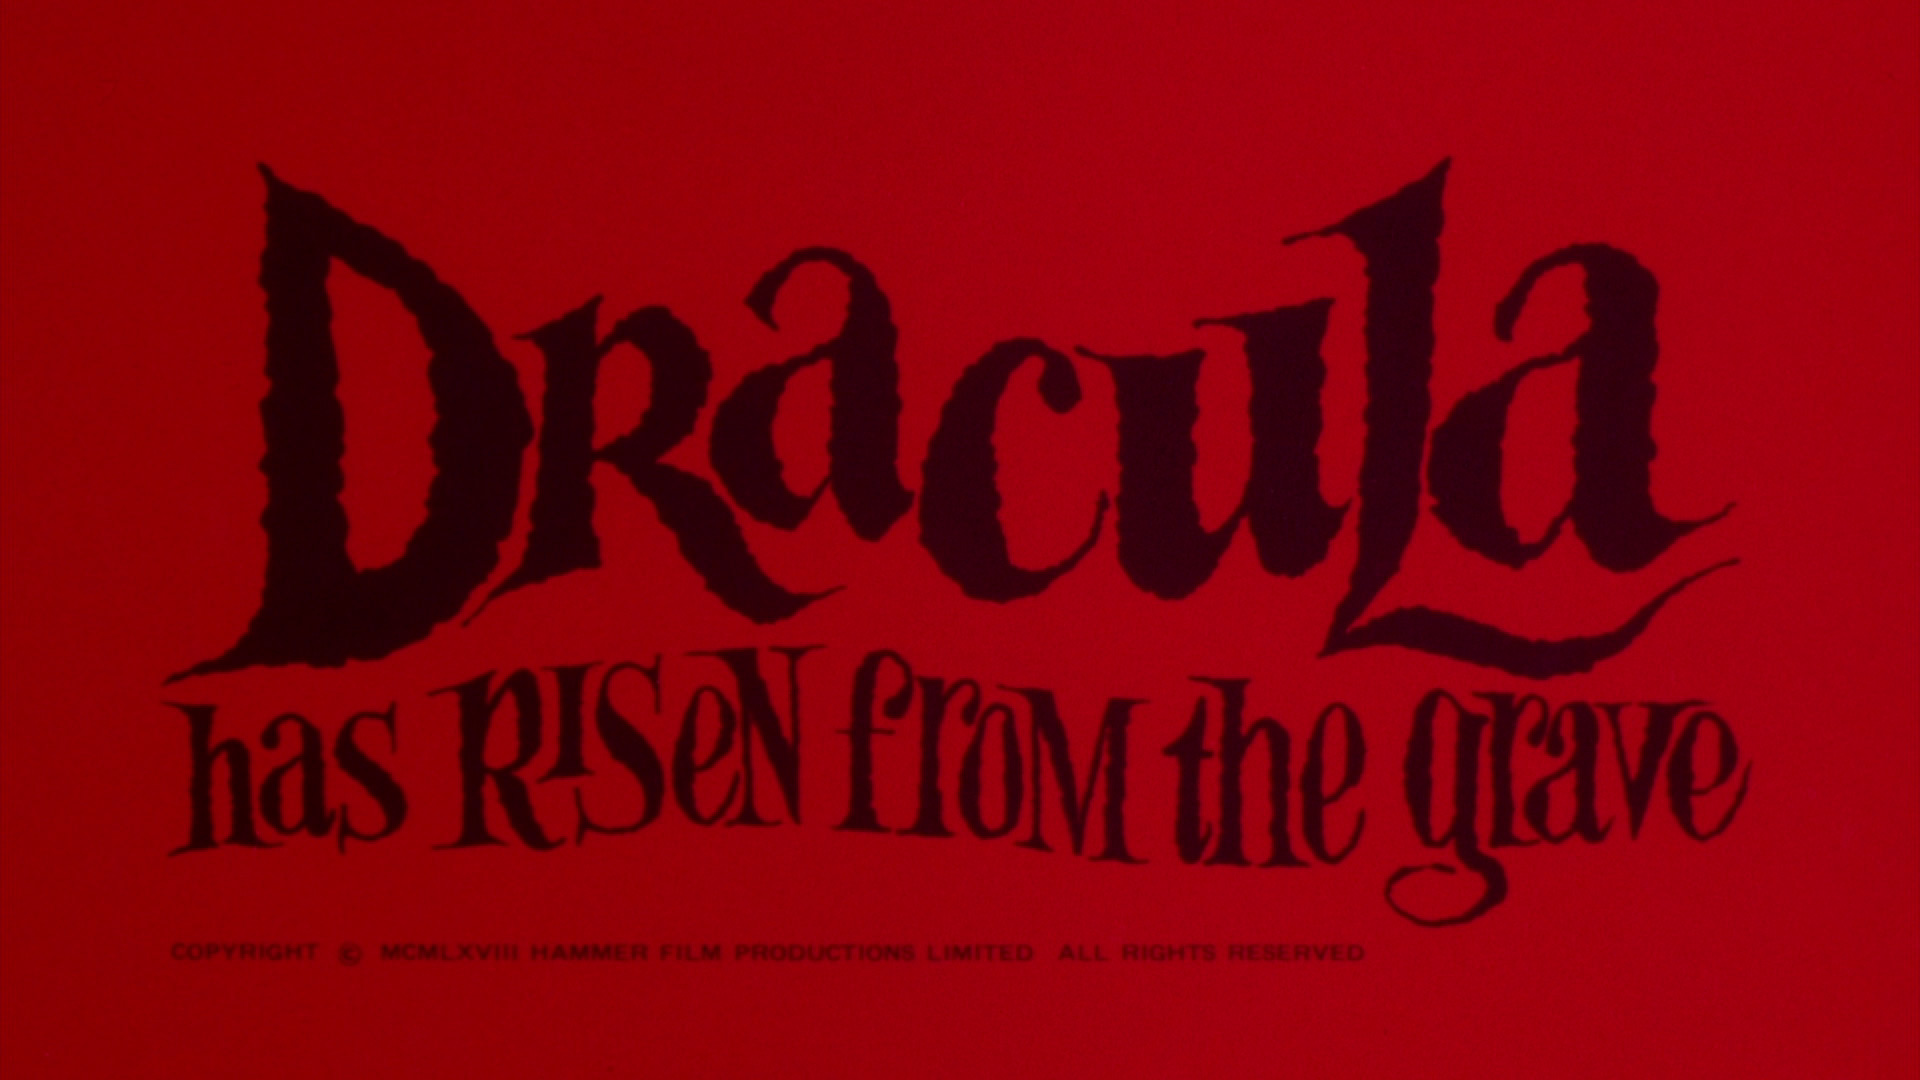 dracula-has-risen-from-the-grave-blu-ray-movie-title-large.jpg